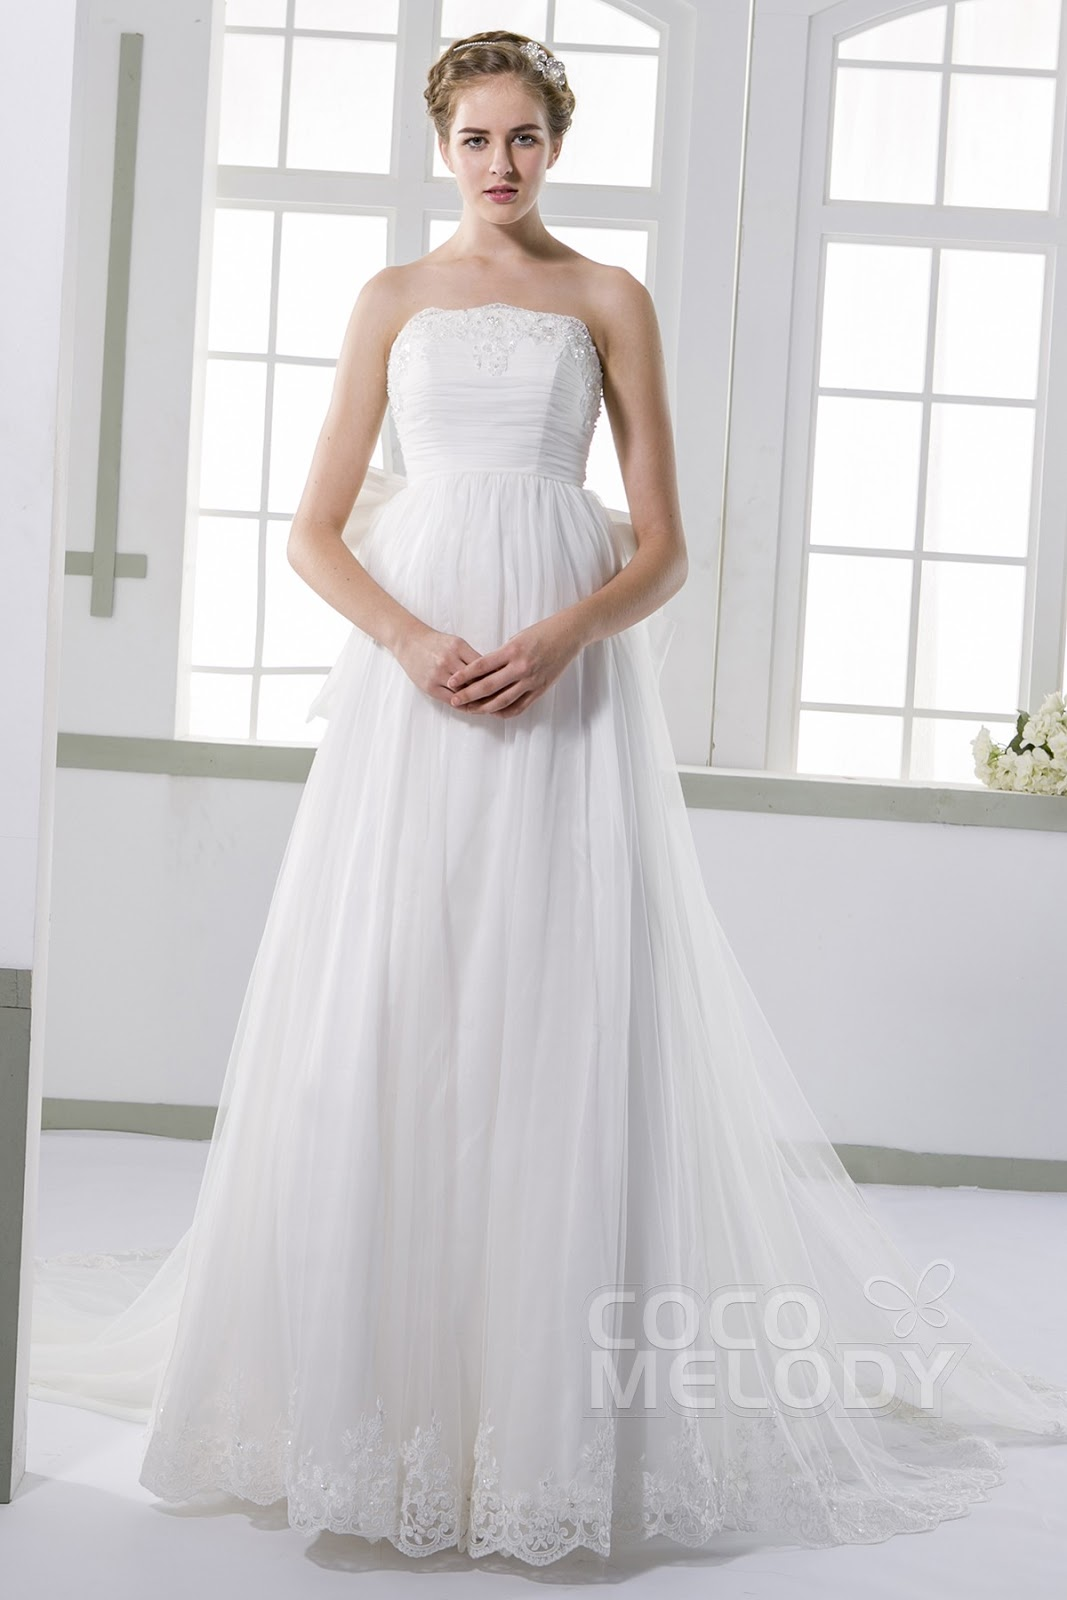 2013 the most beautiful wedding dress: Engagement Gowns Ideal for ...